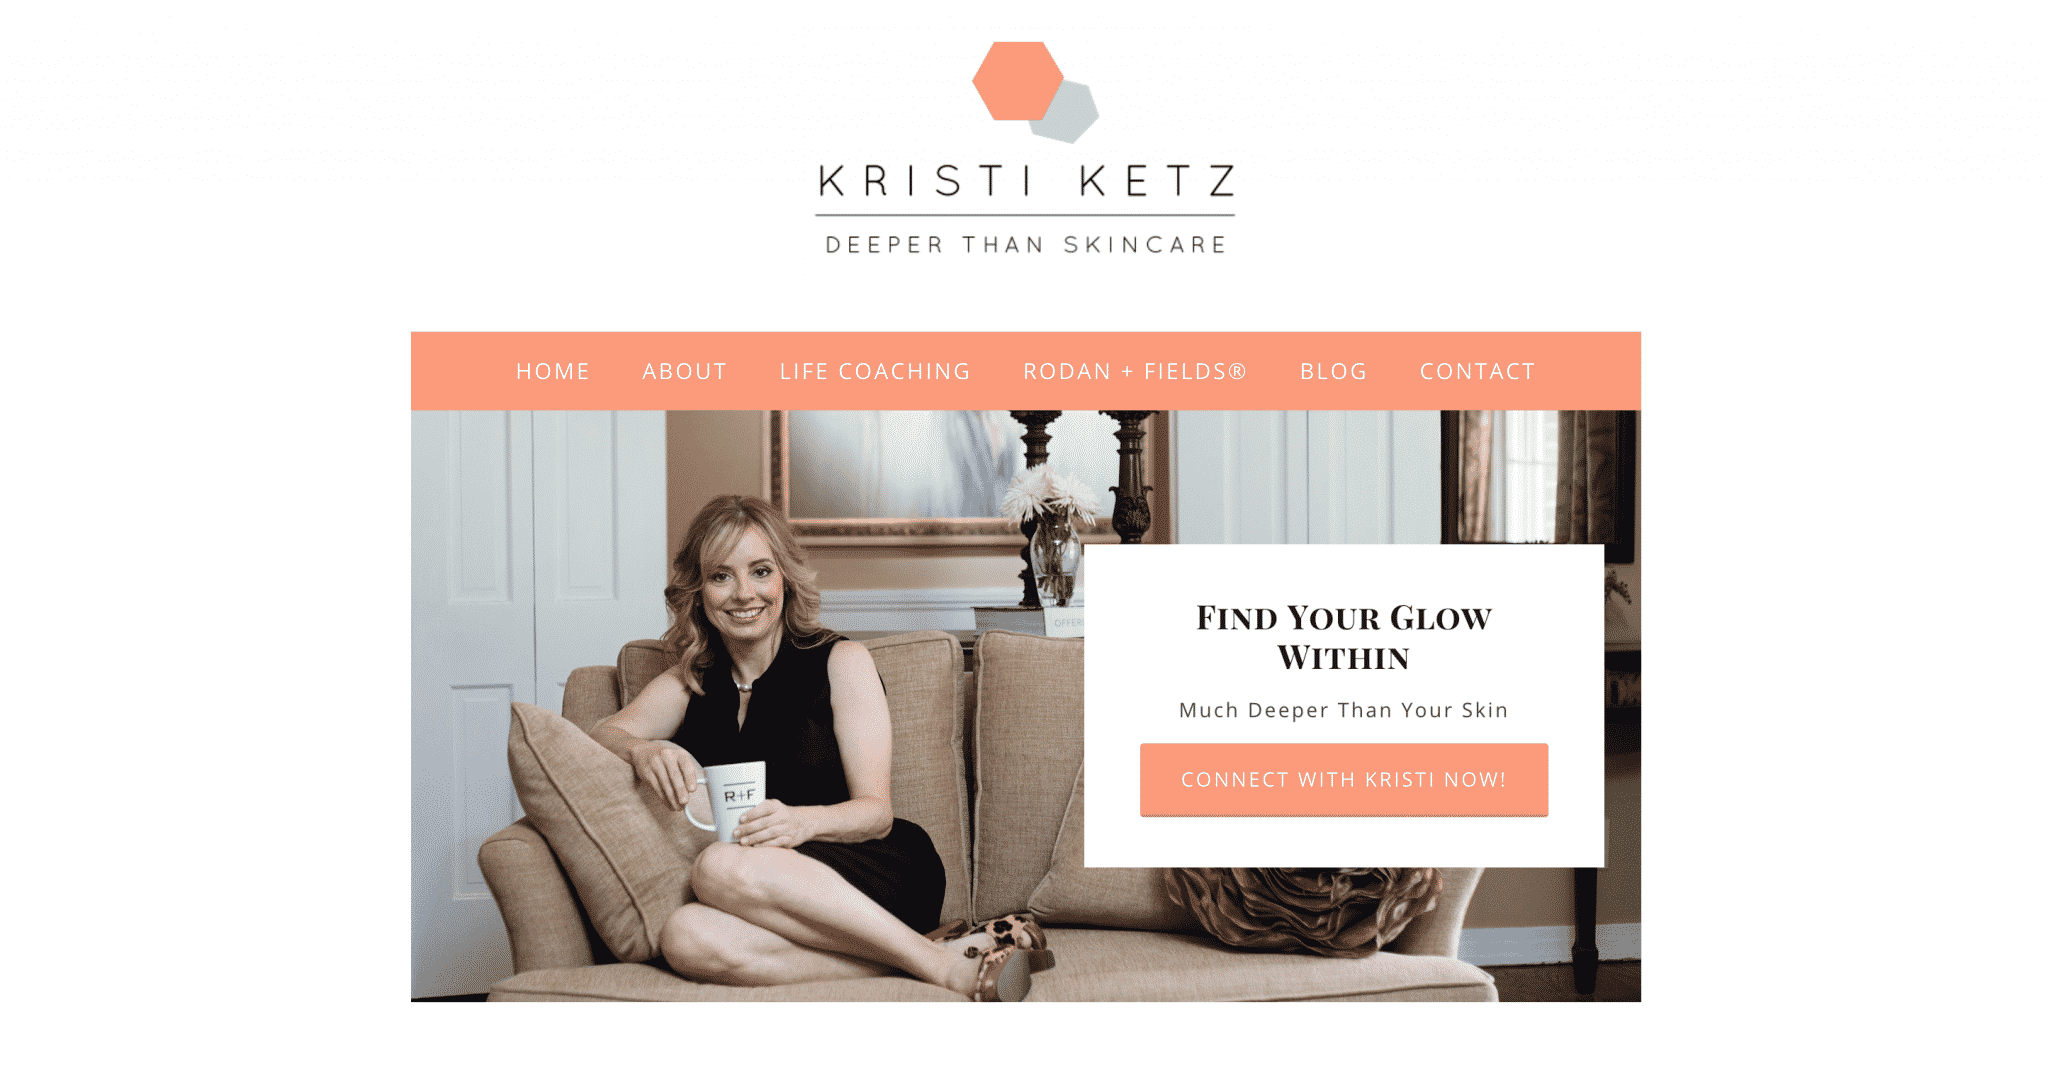 New Web Design Launch Deeper Than Skincare Kristi Ketz The Wp Stylist